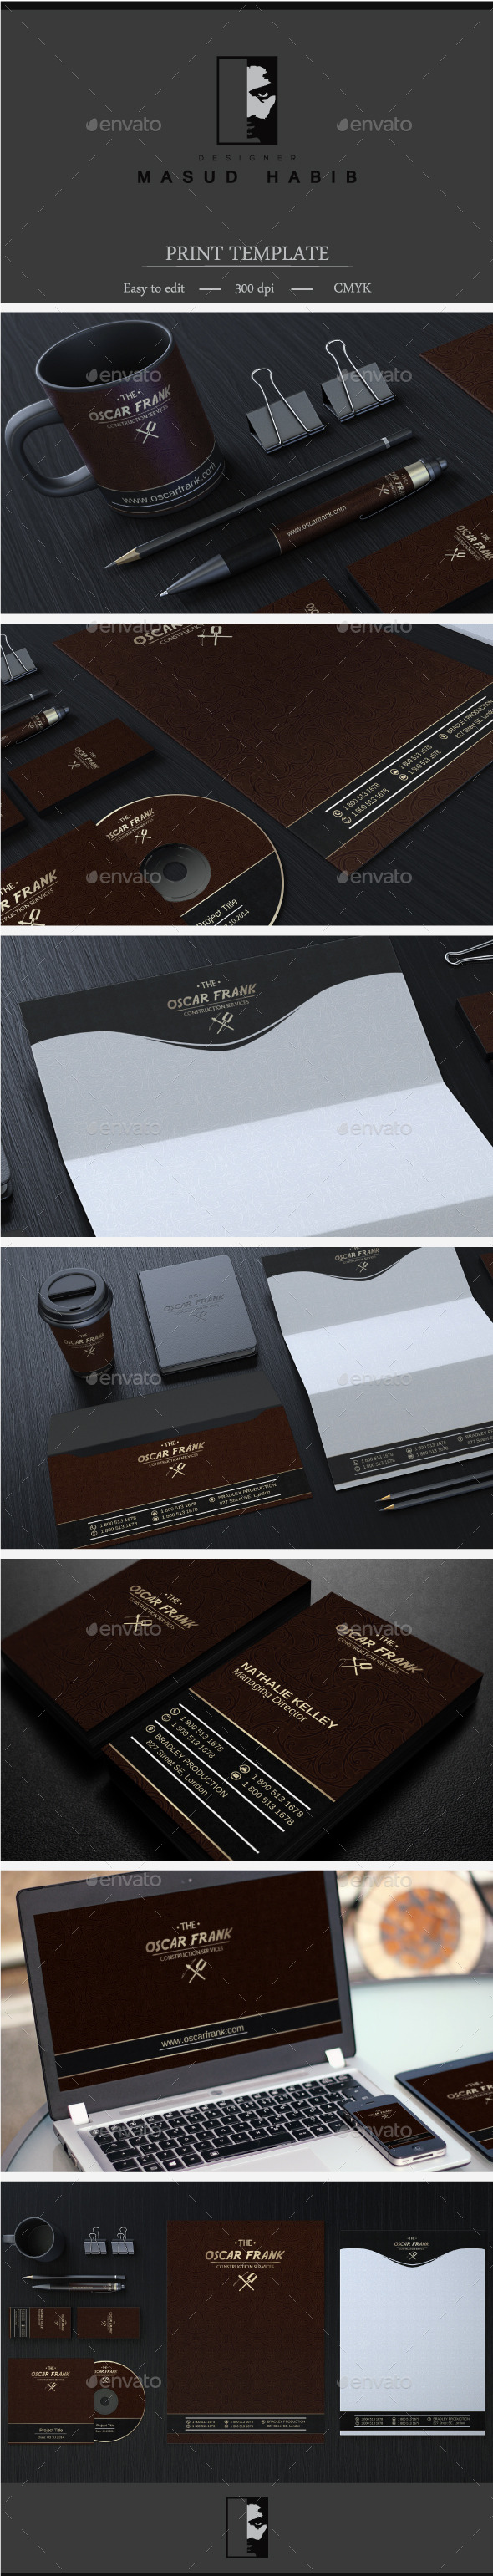 Creative Corporate Identity 25 - Stationery Print Templates